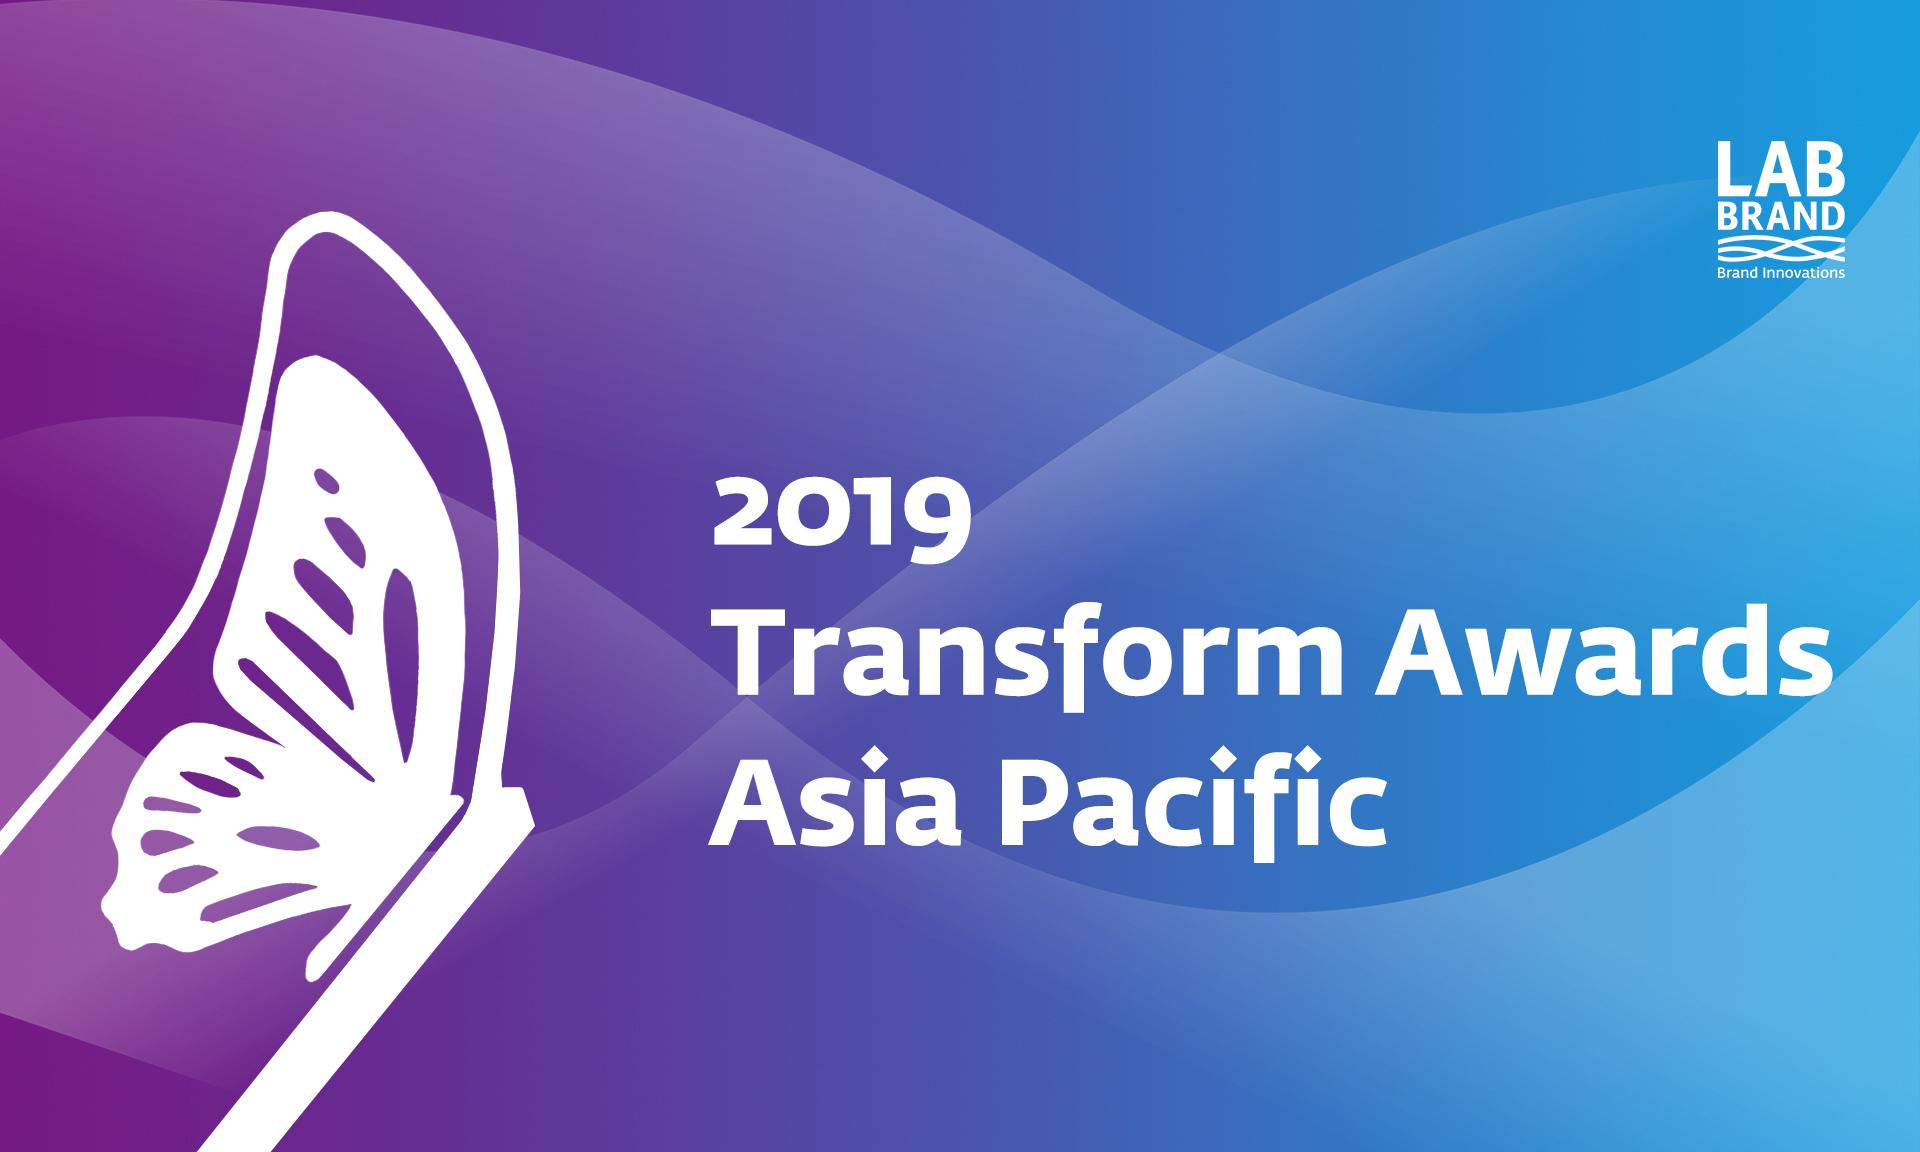 Labbrand Wins at the Transform Awards Asia Pacific